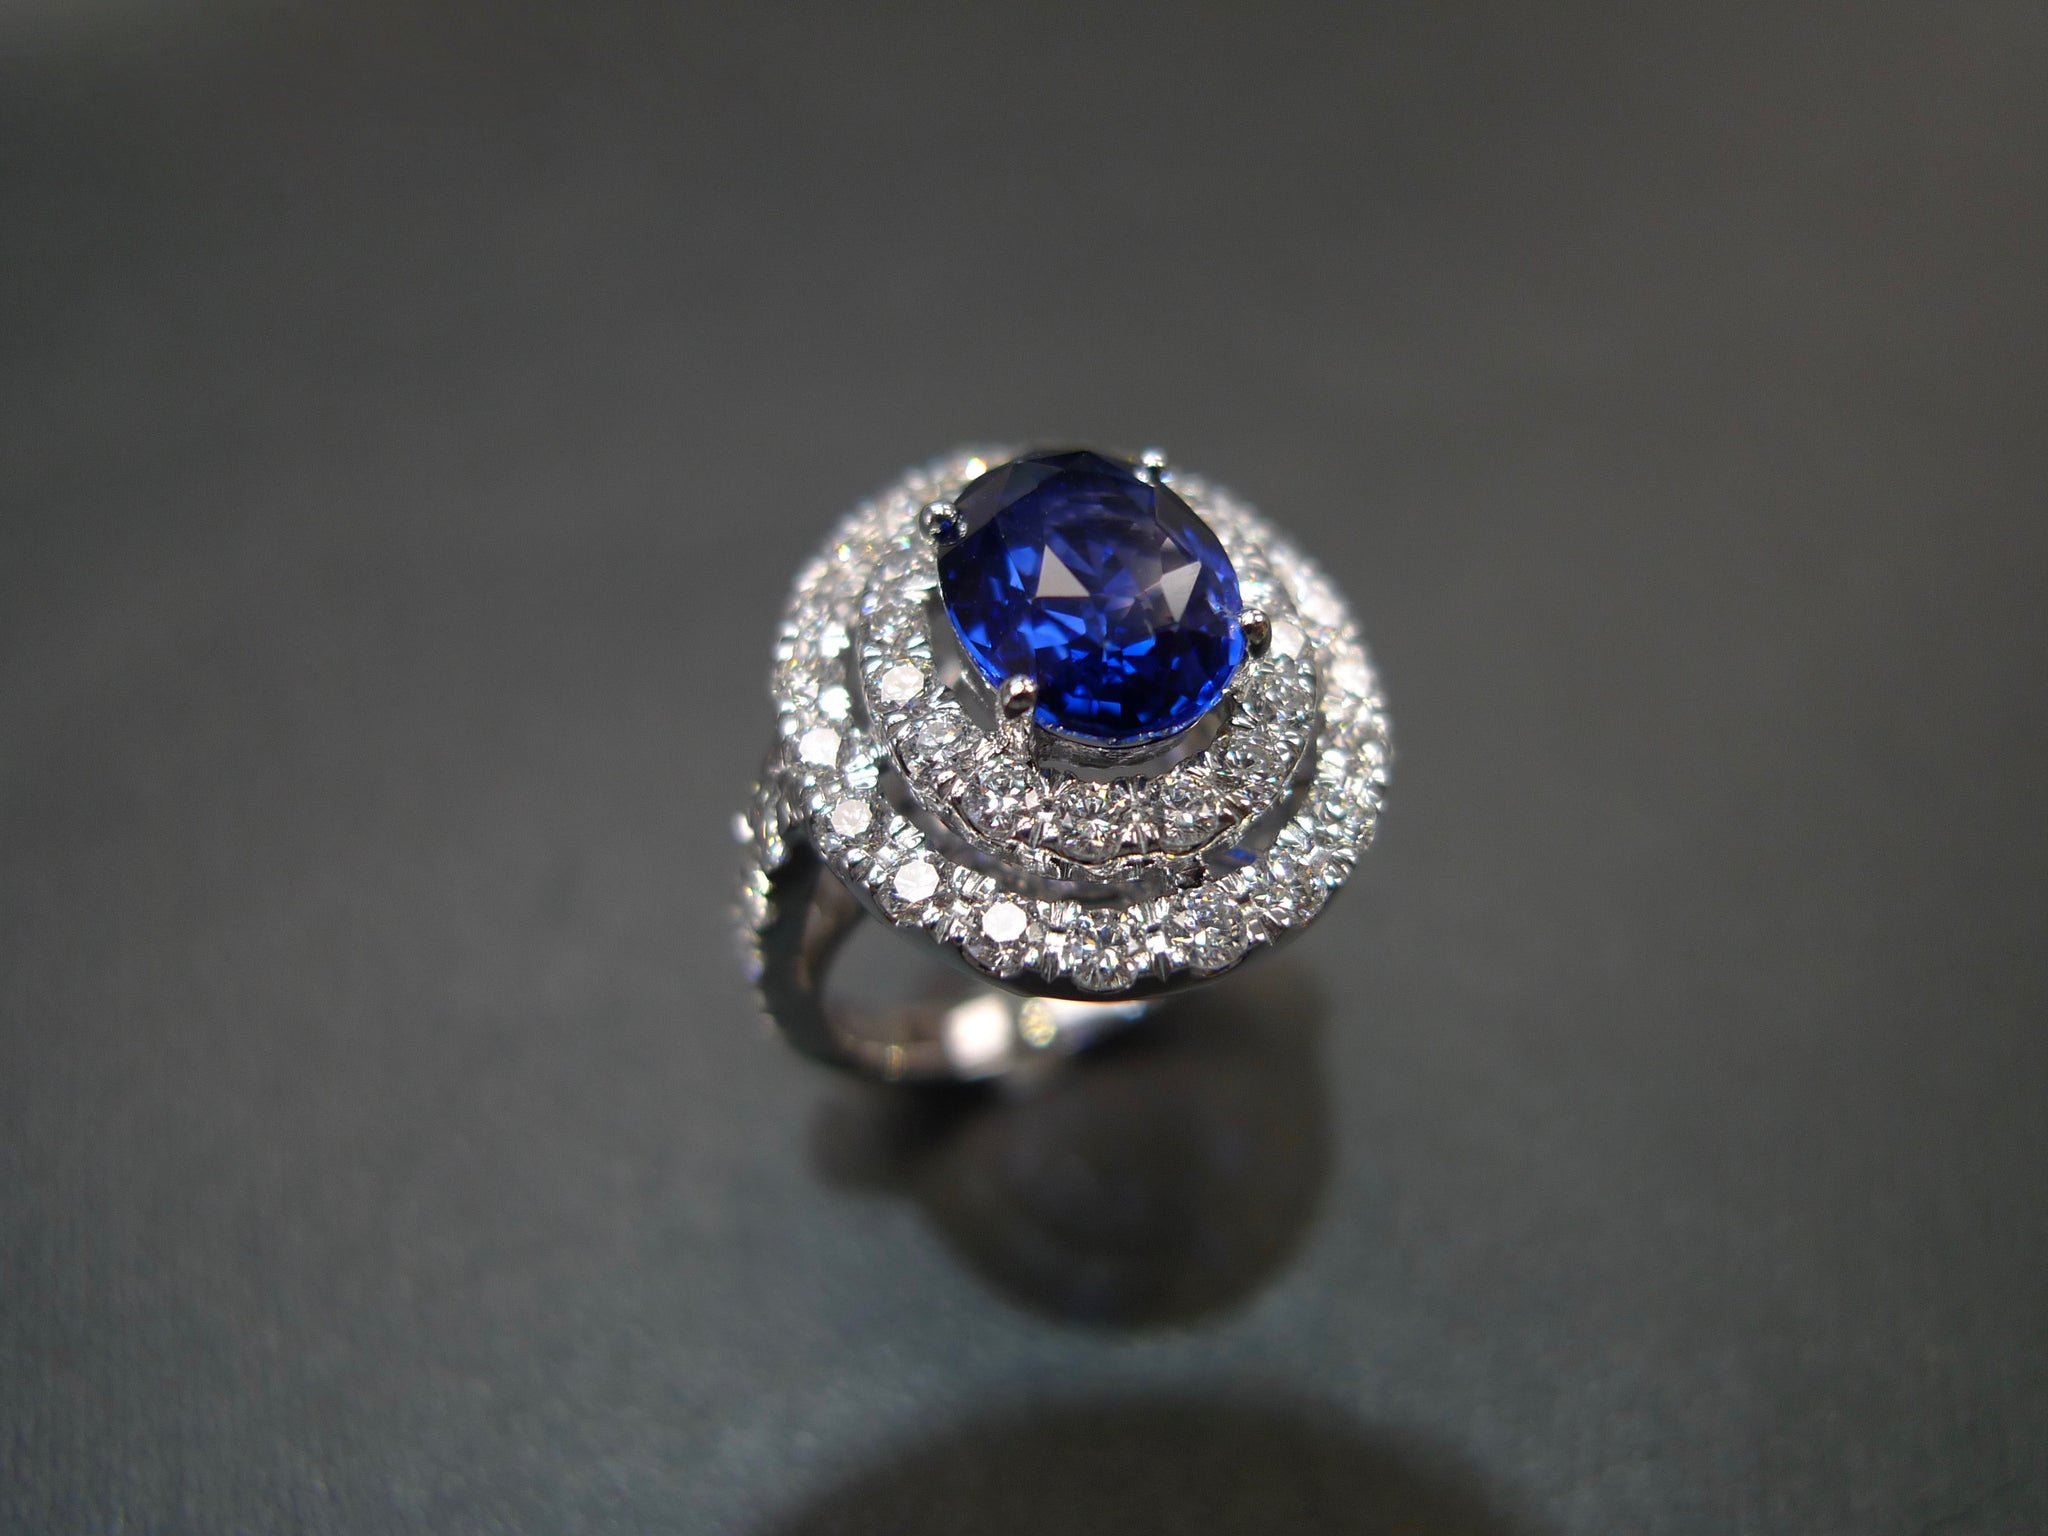 3.04ct Ceylon Blue Sapphire and Diamond Double Halo Ring in 18K White Gold - HN JEWELRY